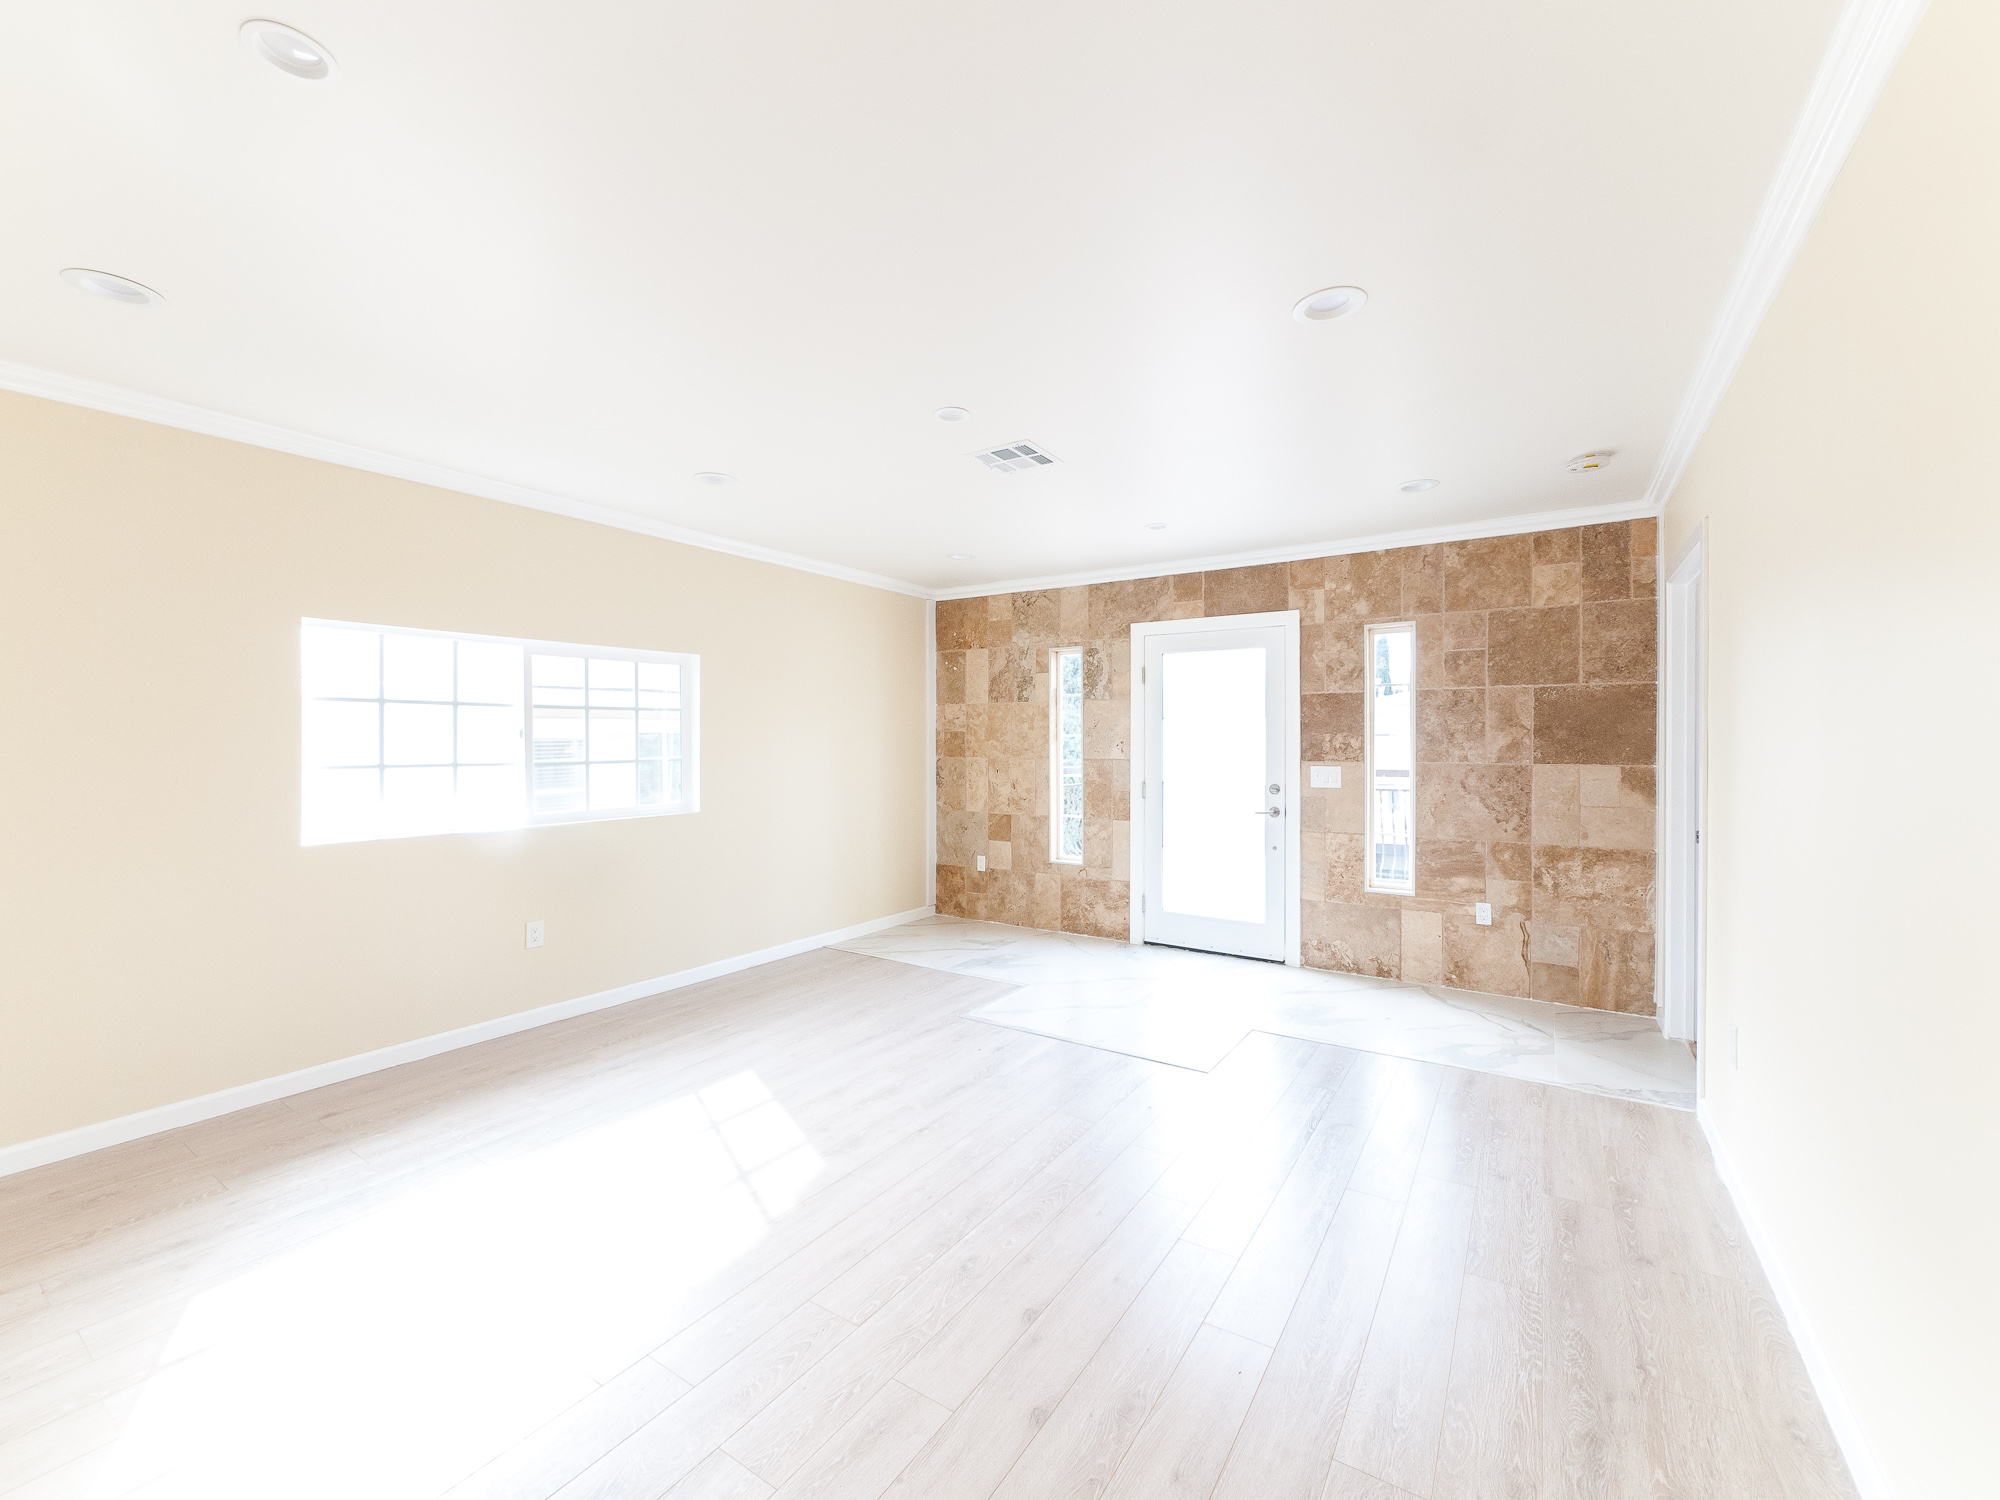 2BR/ 2.5 Bath w/ Parking- Brand-New Renovations in Stylish Duplex